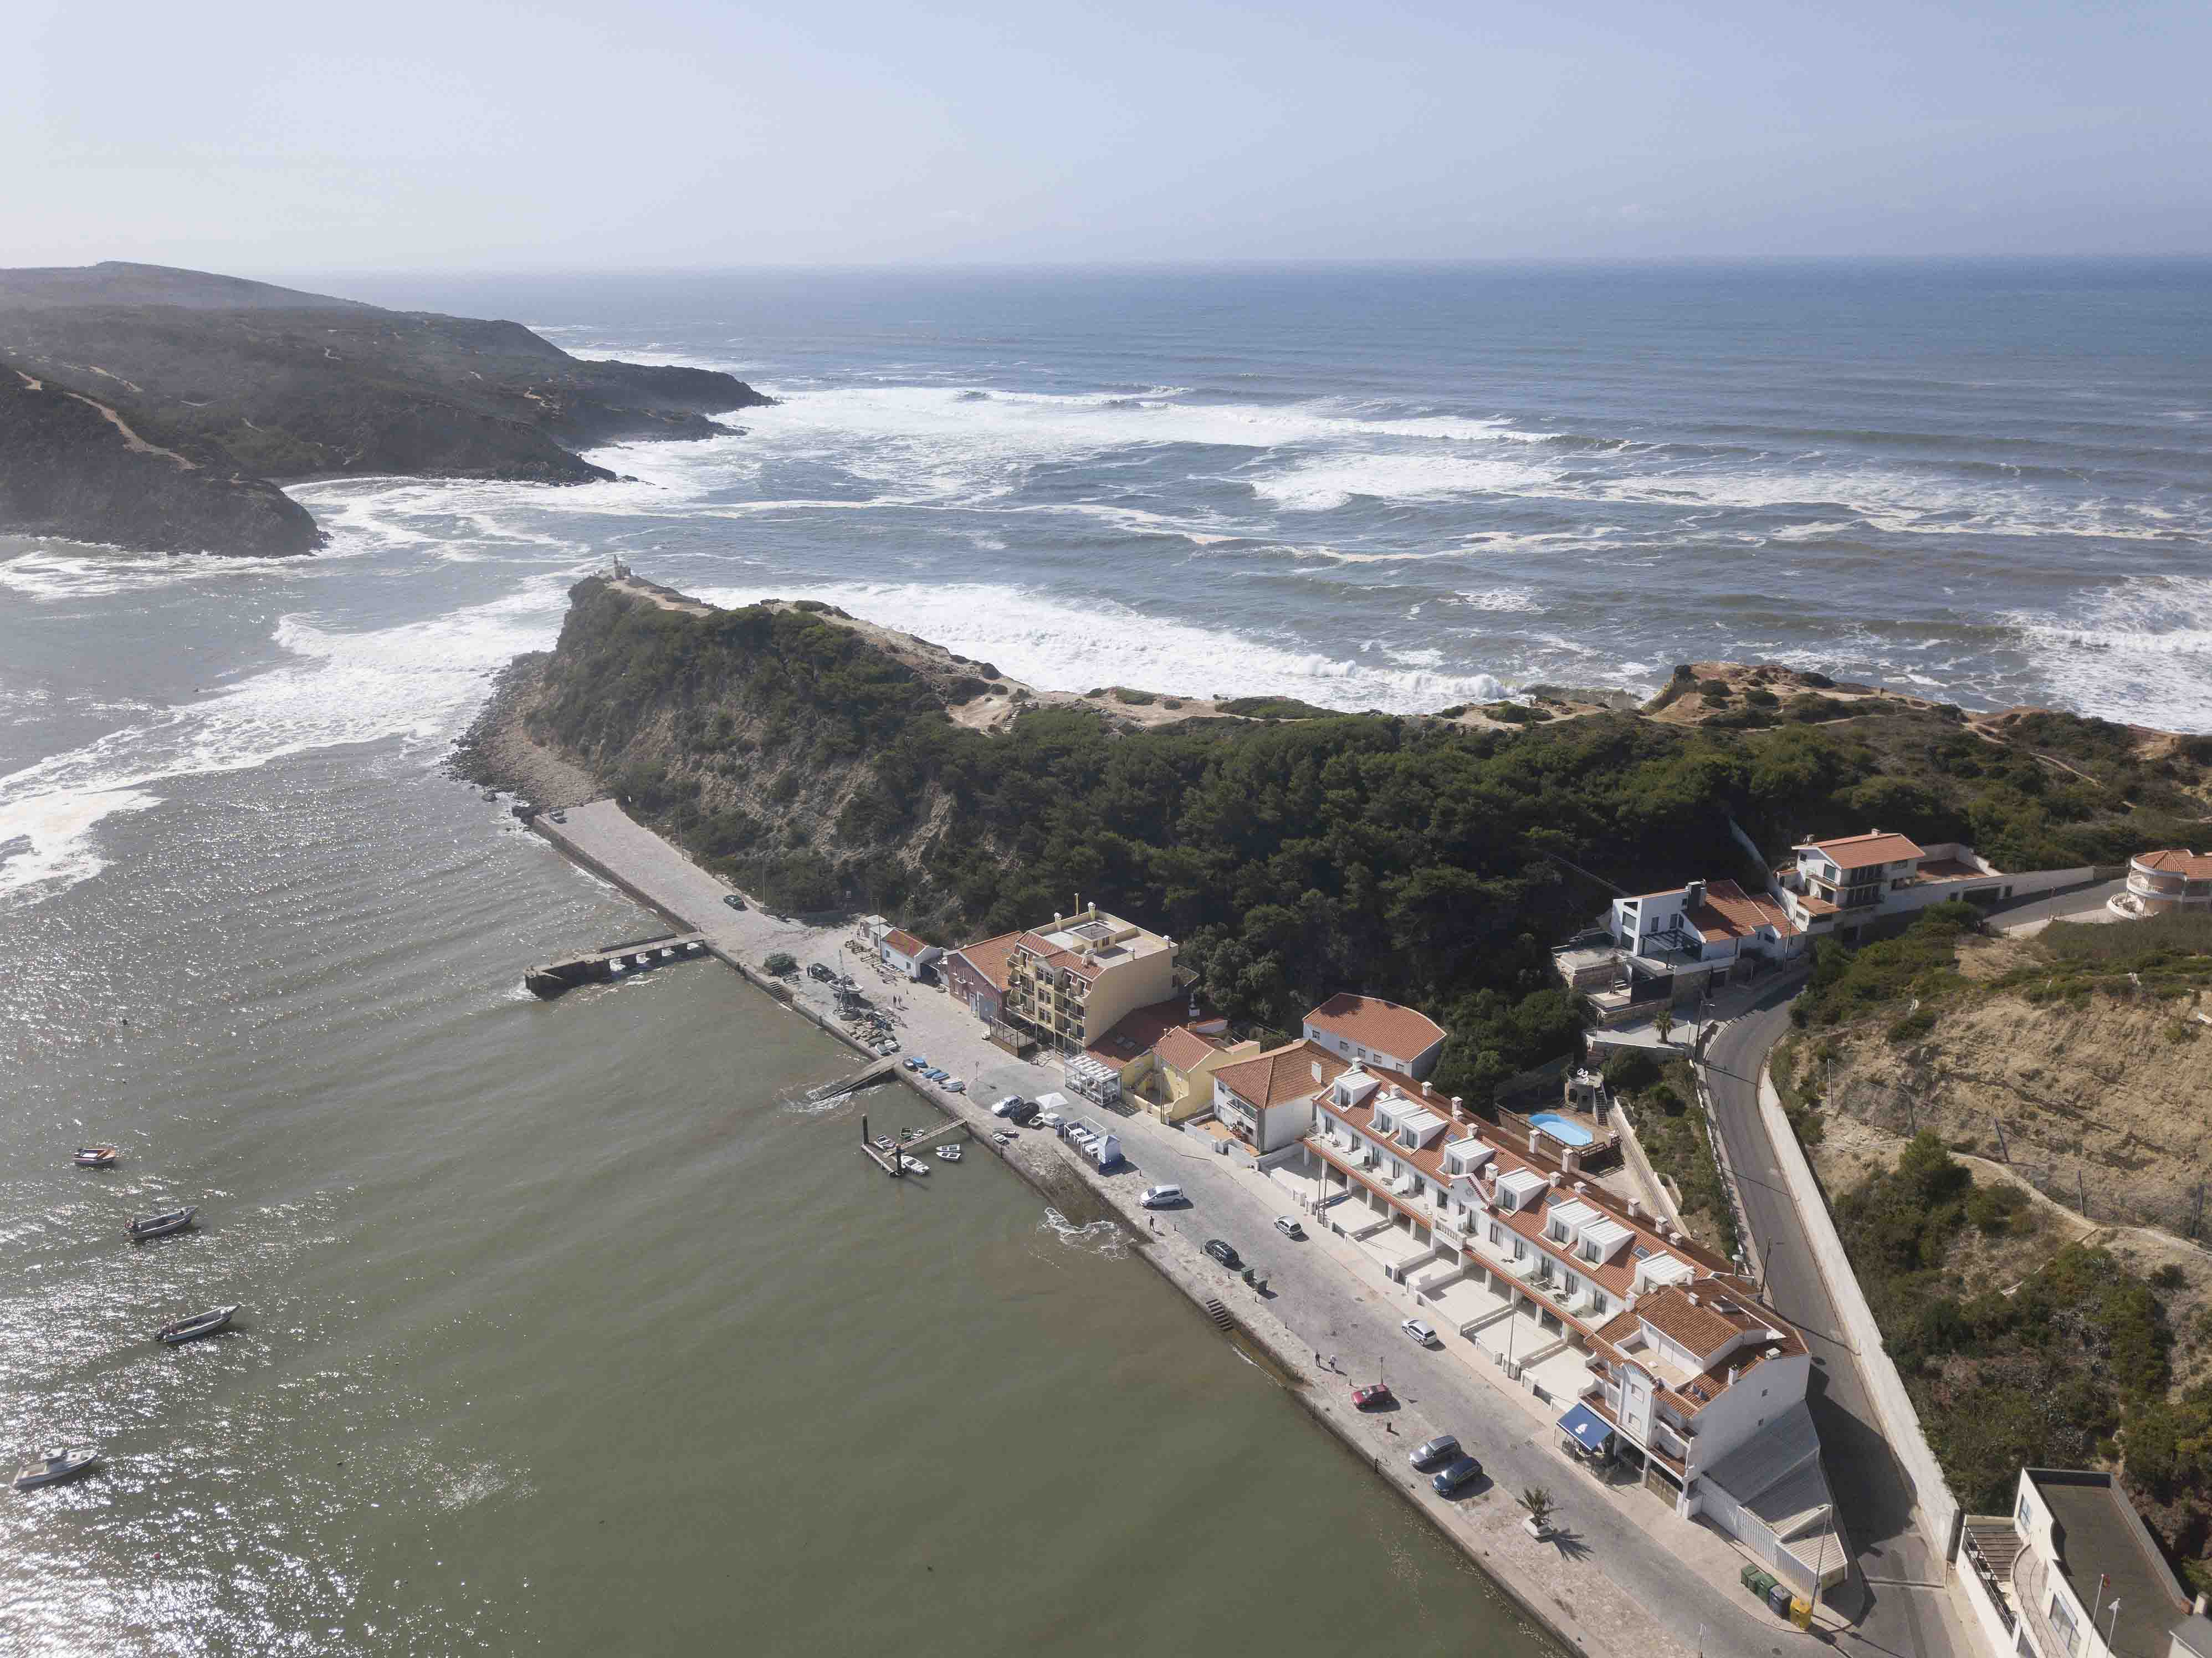 24-cais-sao-martinho-porto-silver-coast-new-buil-construction-portugal-for-sale